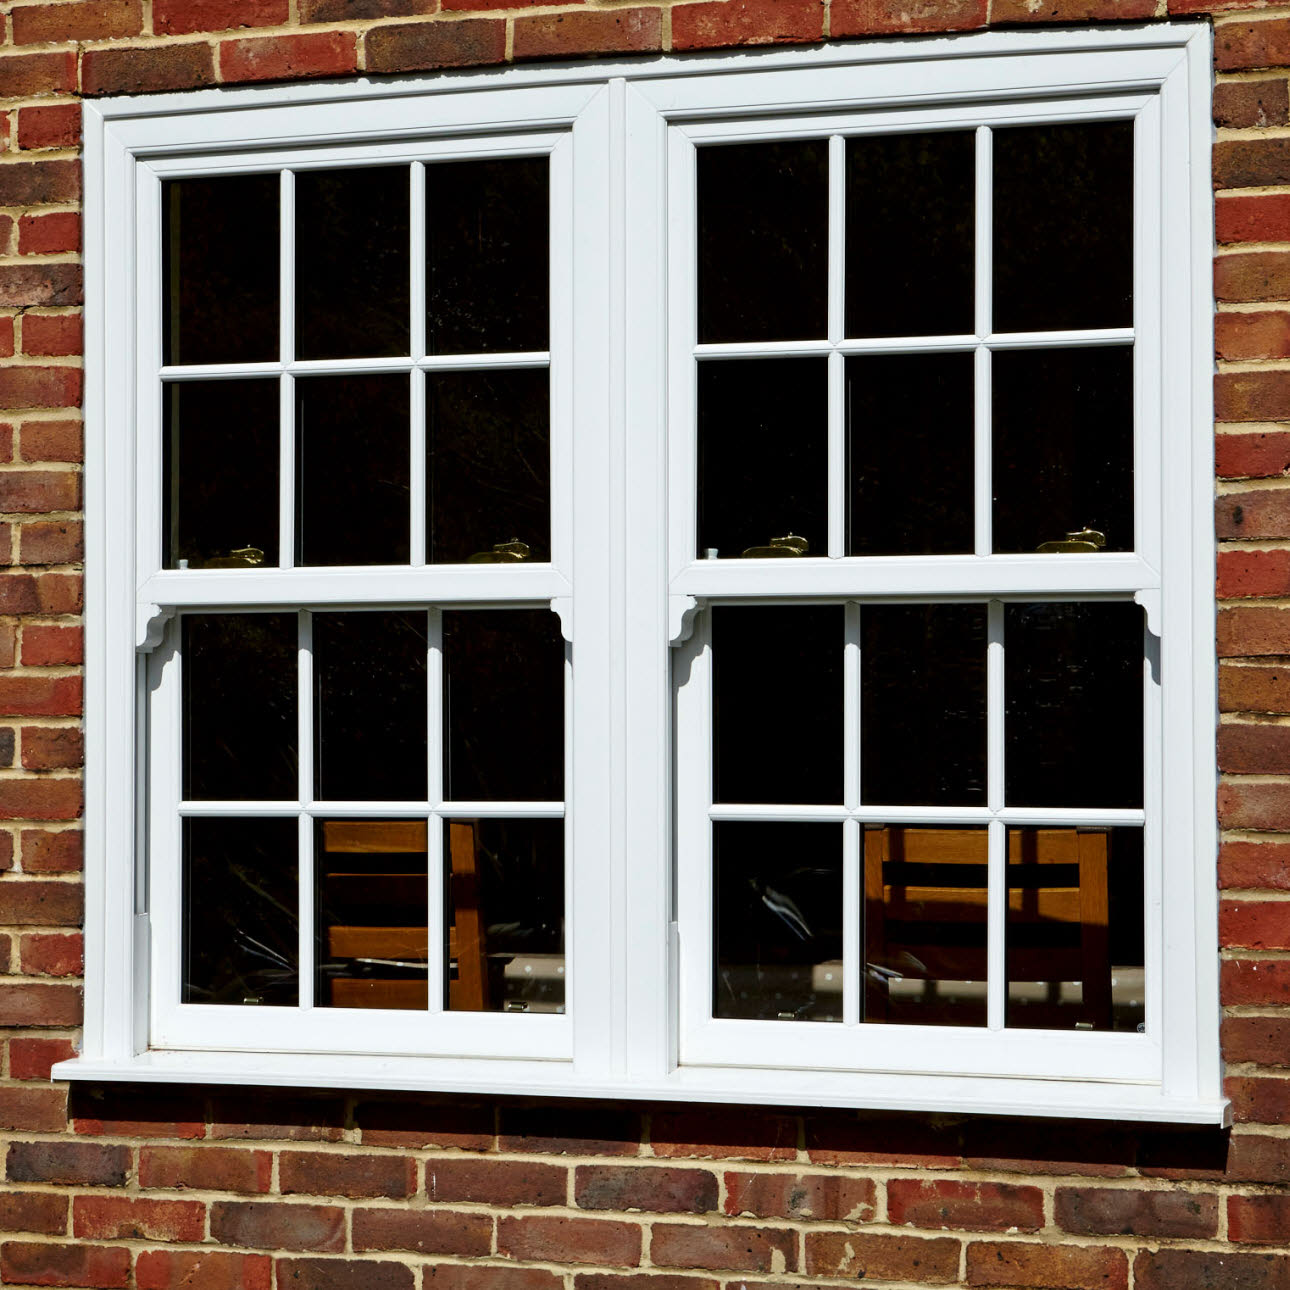 Why Upvc Doors And Windows Are The Best moreover 193068 together with Elizabeth Fry Building University East Anglia also Outward Opening Timber Windows also Aluminium Bi Fold Doors. on double glazed windows east anglia